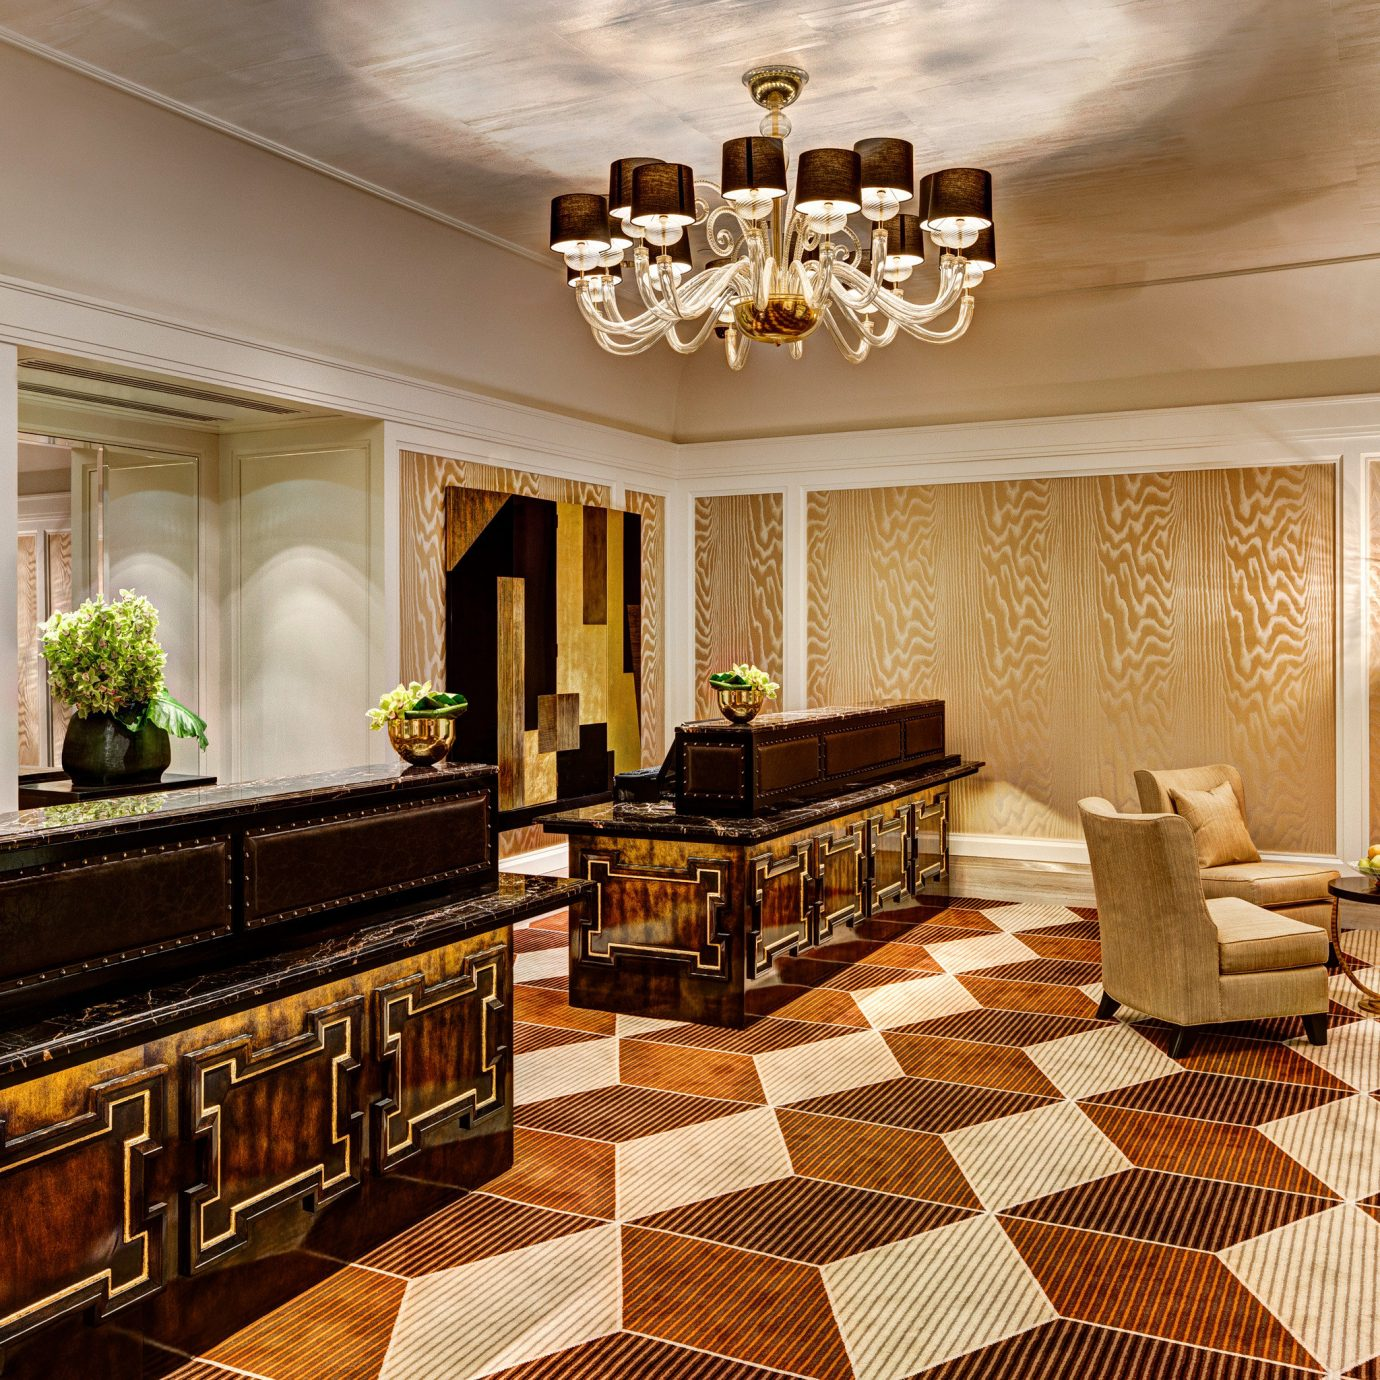 City Historic Lobby Modern property living room mansion home hardwood flooring Suite wood flooring